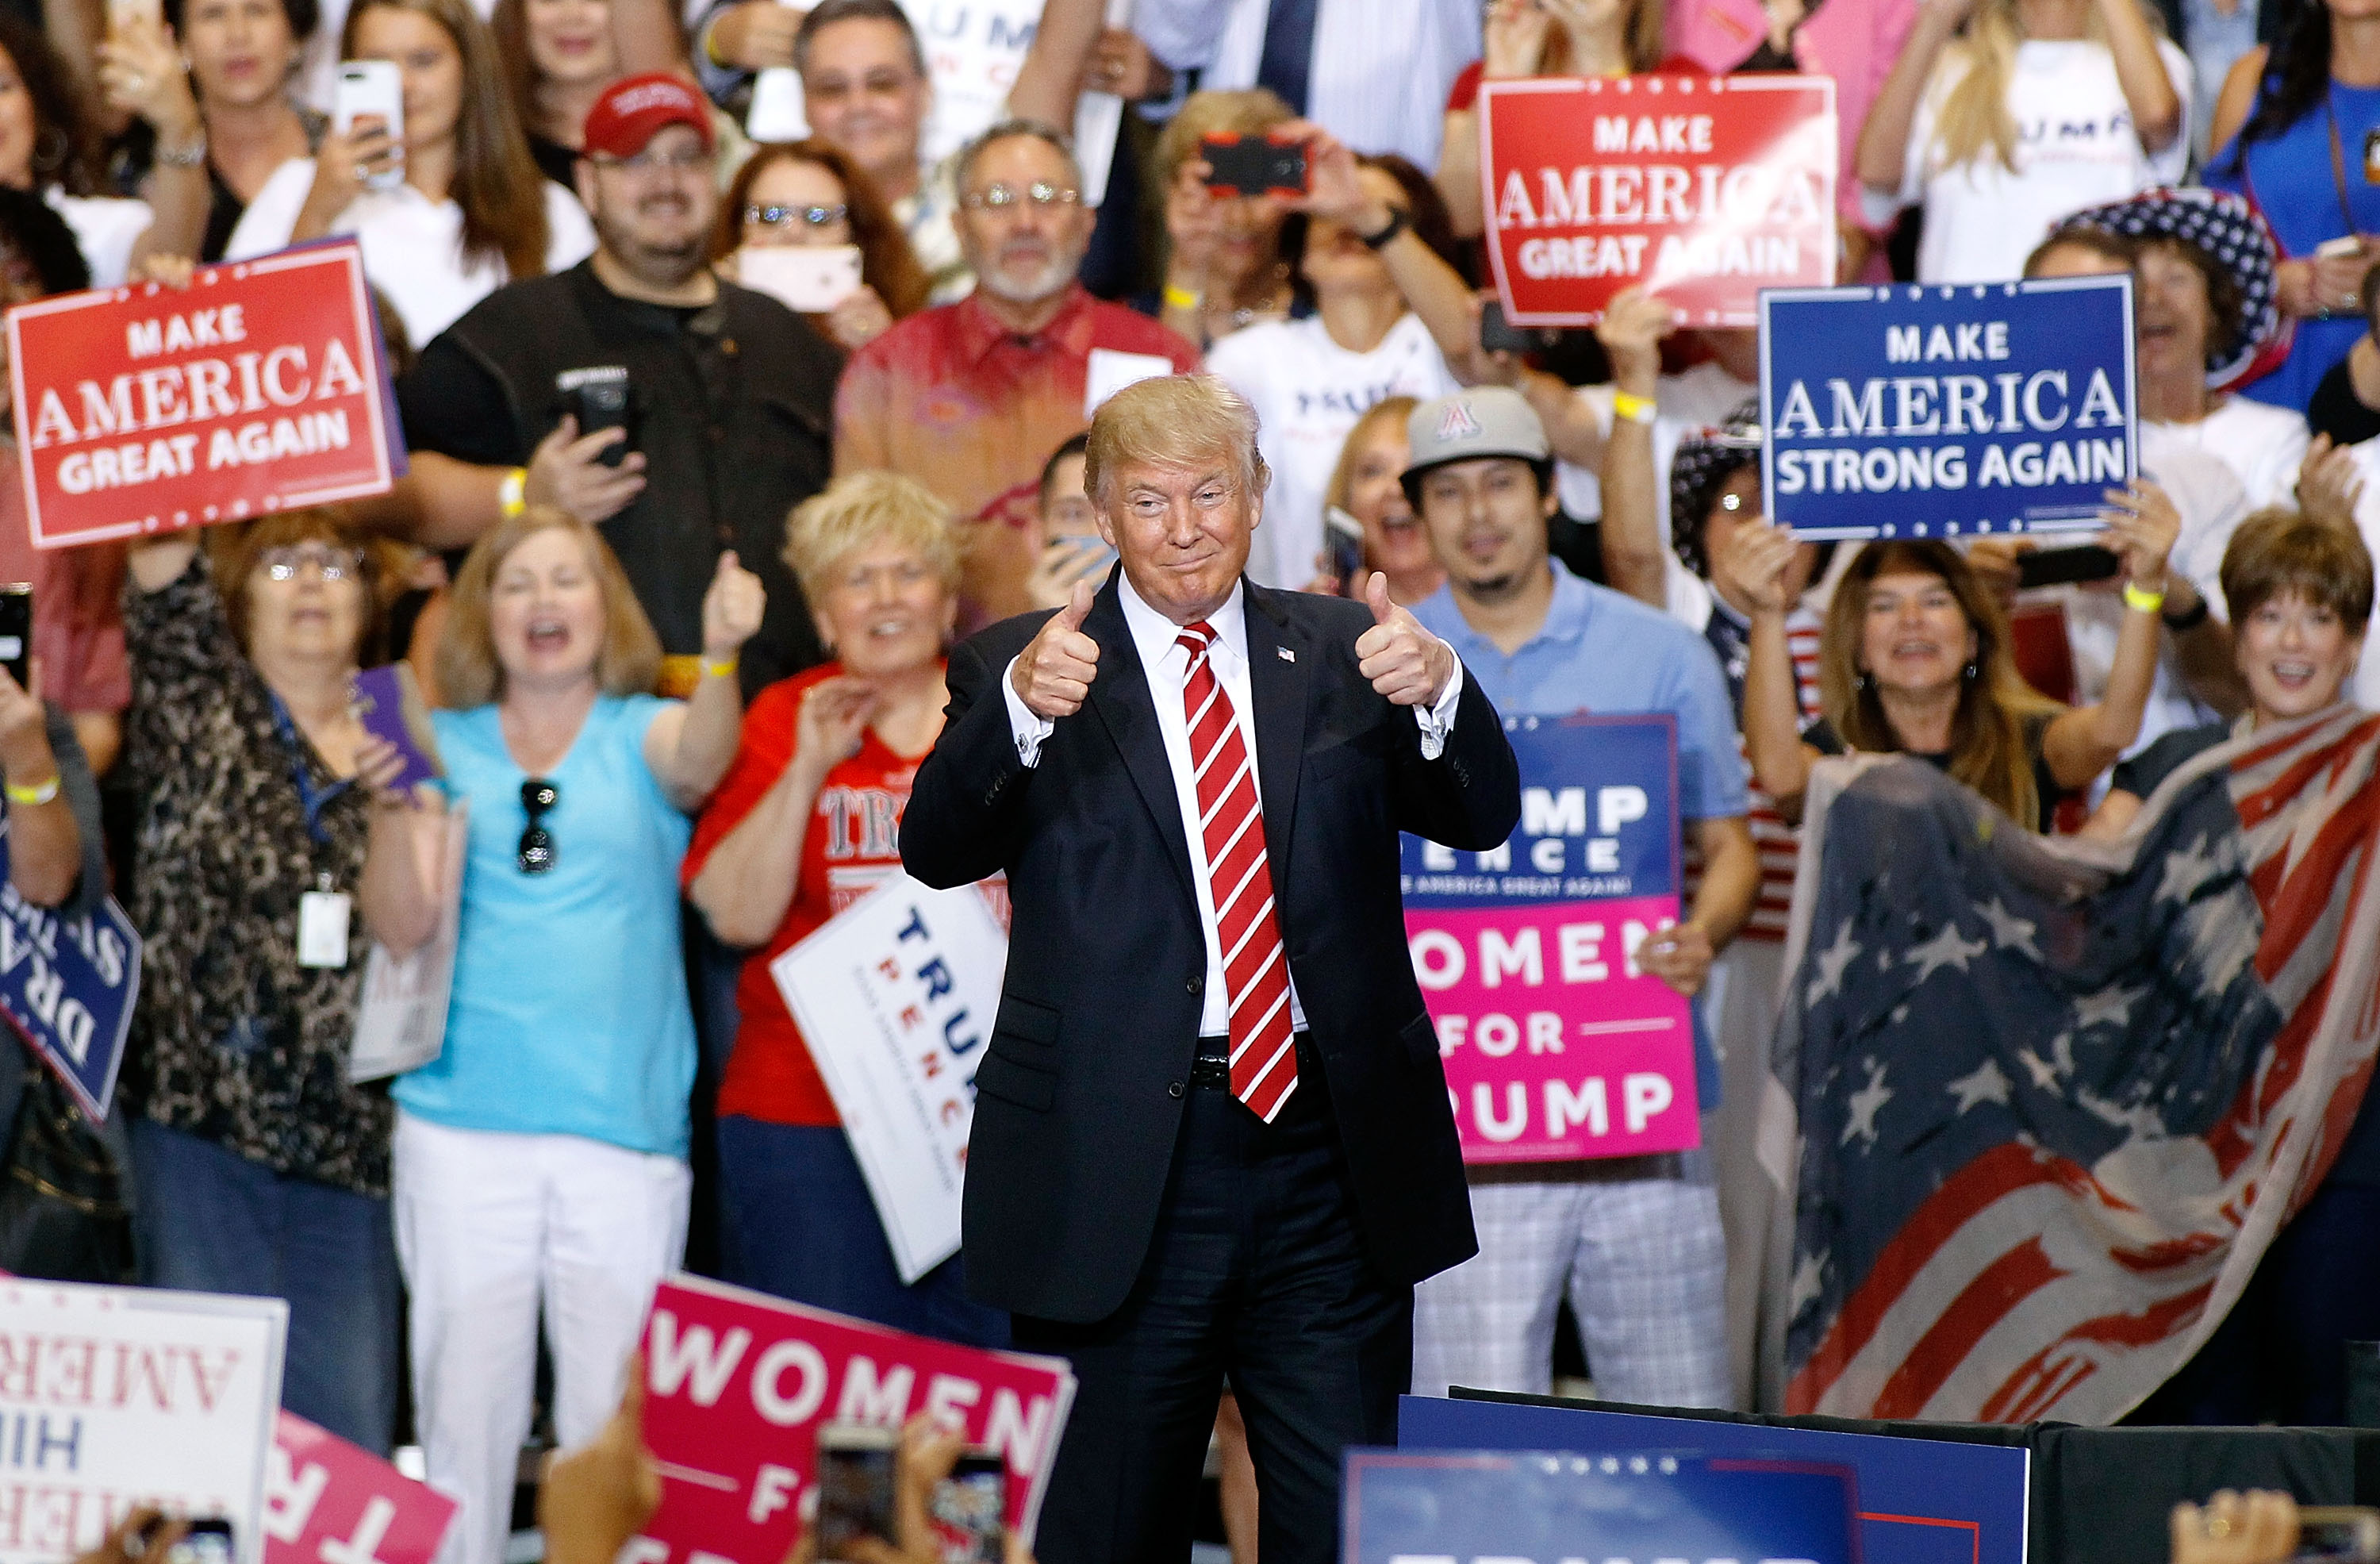 President Donald Trump  during a rally at the Phoenix Convention Center on Aug. 22, 2017 in Phoenix, Arizona. (Ralph Freso/Getty Images)